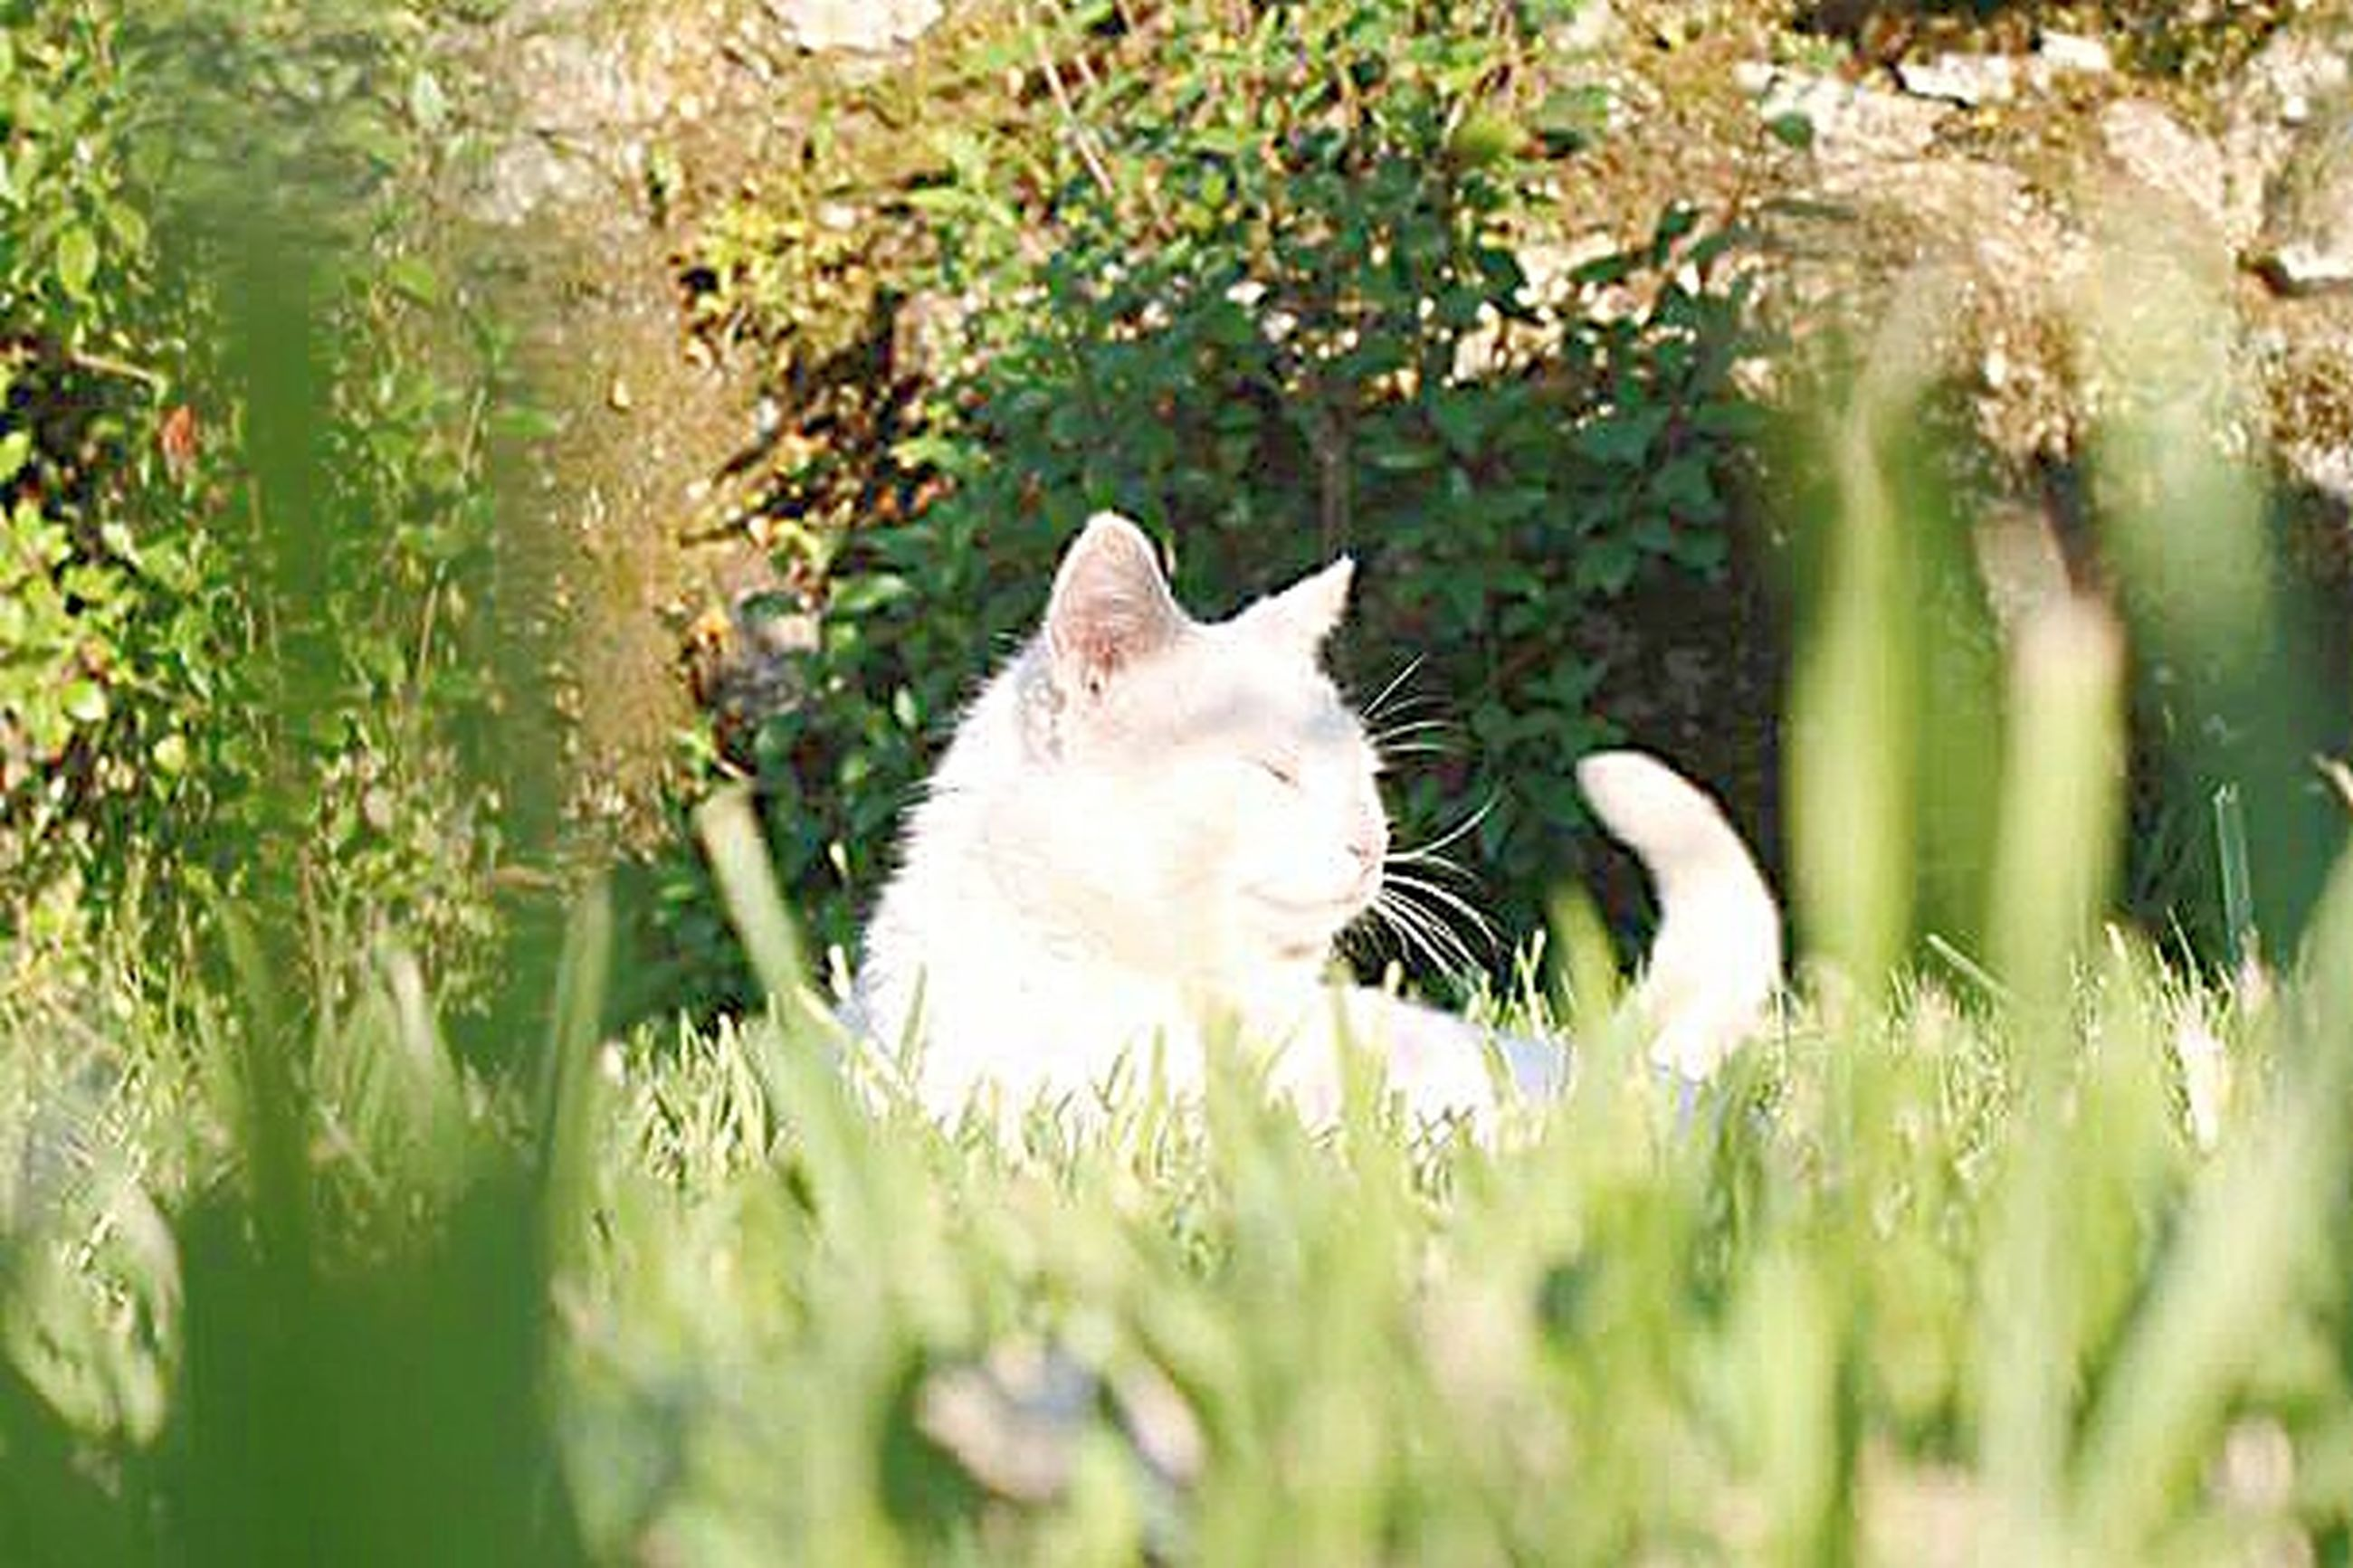 grass, pets, animal themes, domestic animals, one animal, mammal, grassy, field, domestic cat, cat, feline, growth, green color, plant, selective focus, nature, relaxation, dog, day, no people